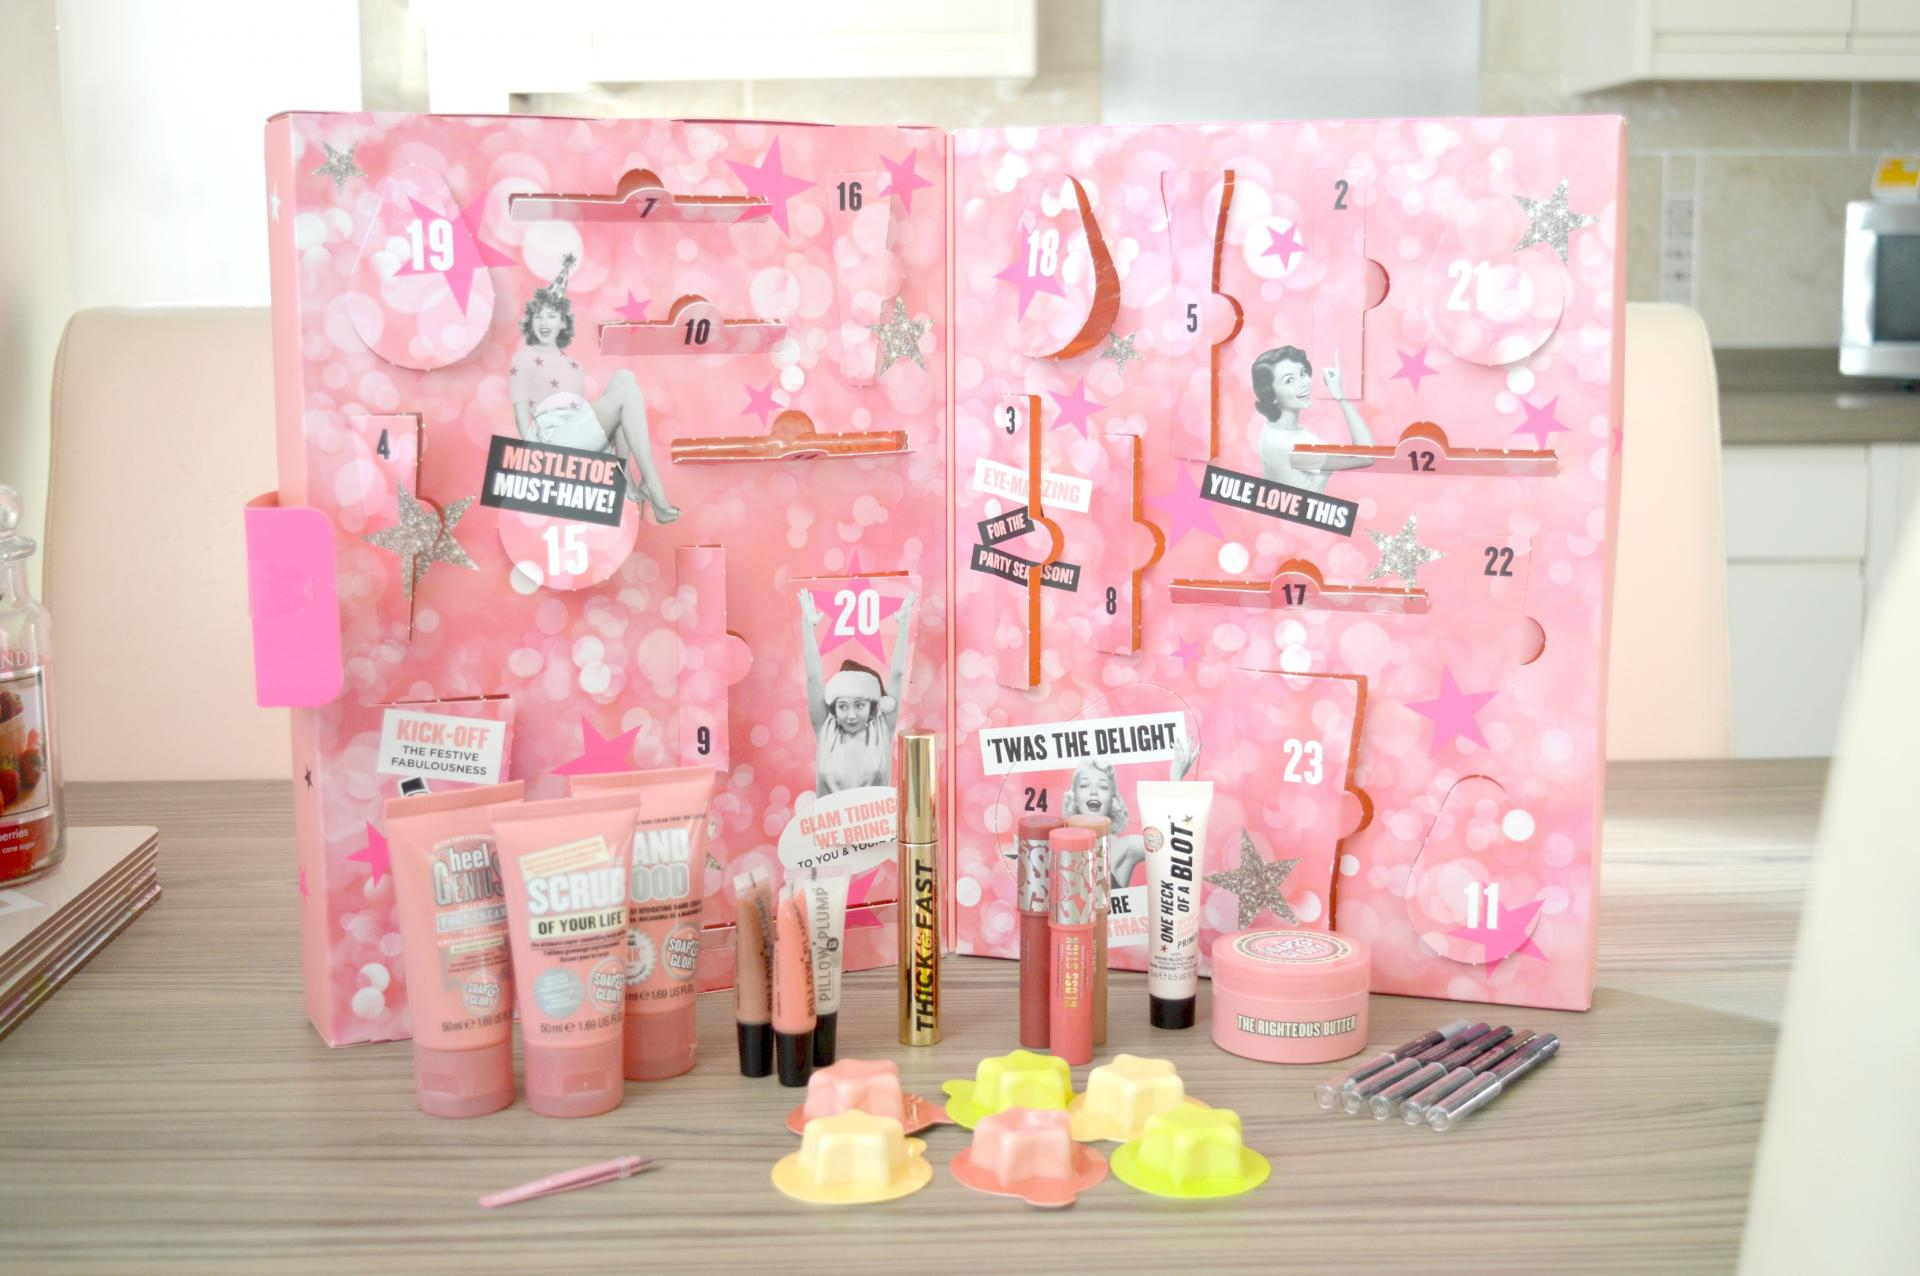 Is The Soap and Glory Advent Calendar The Best Beauty Option?